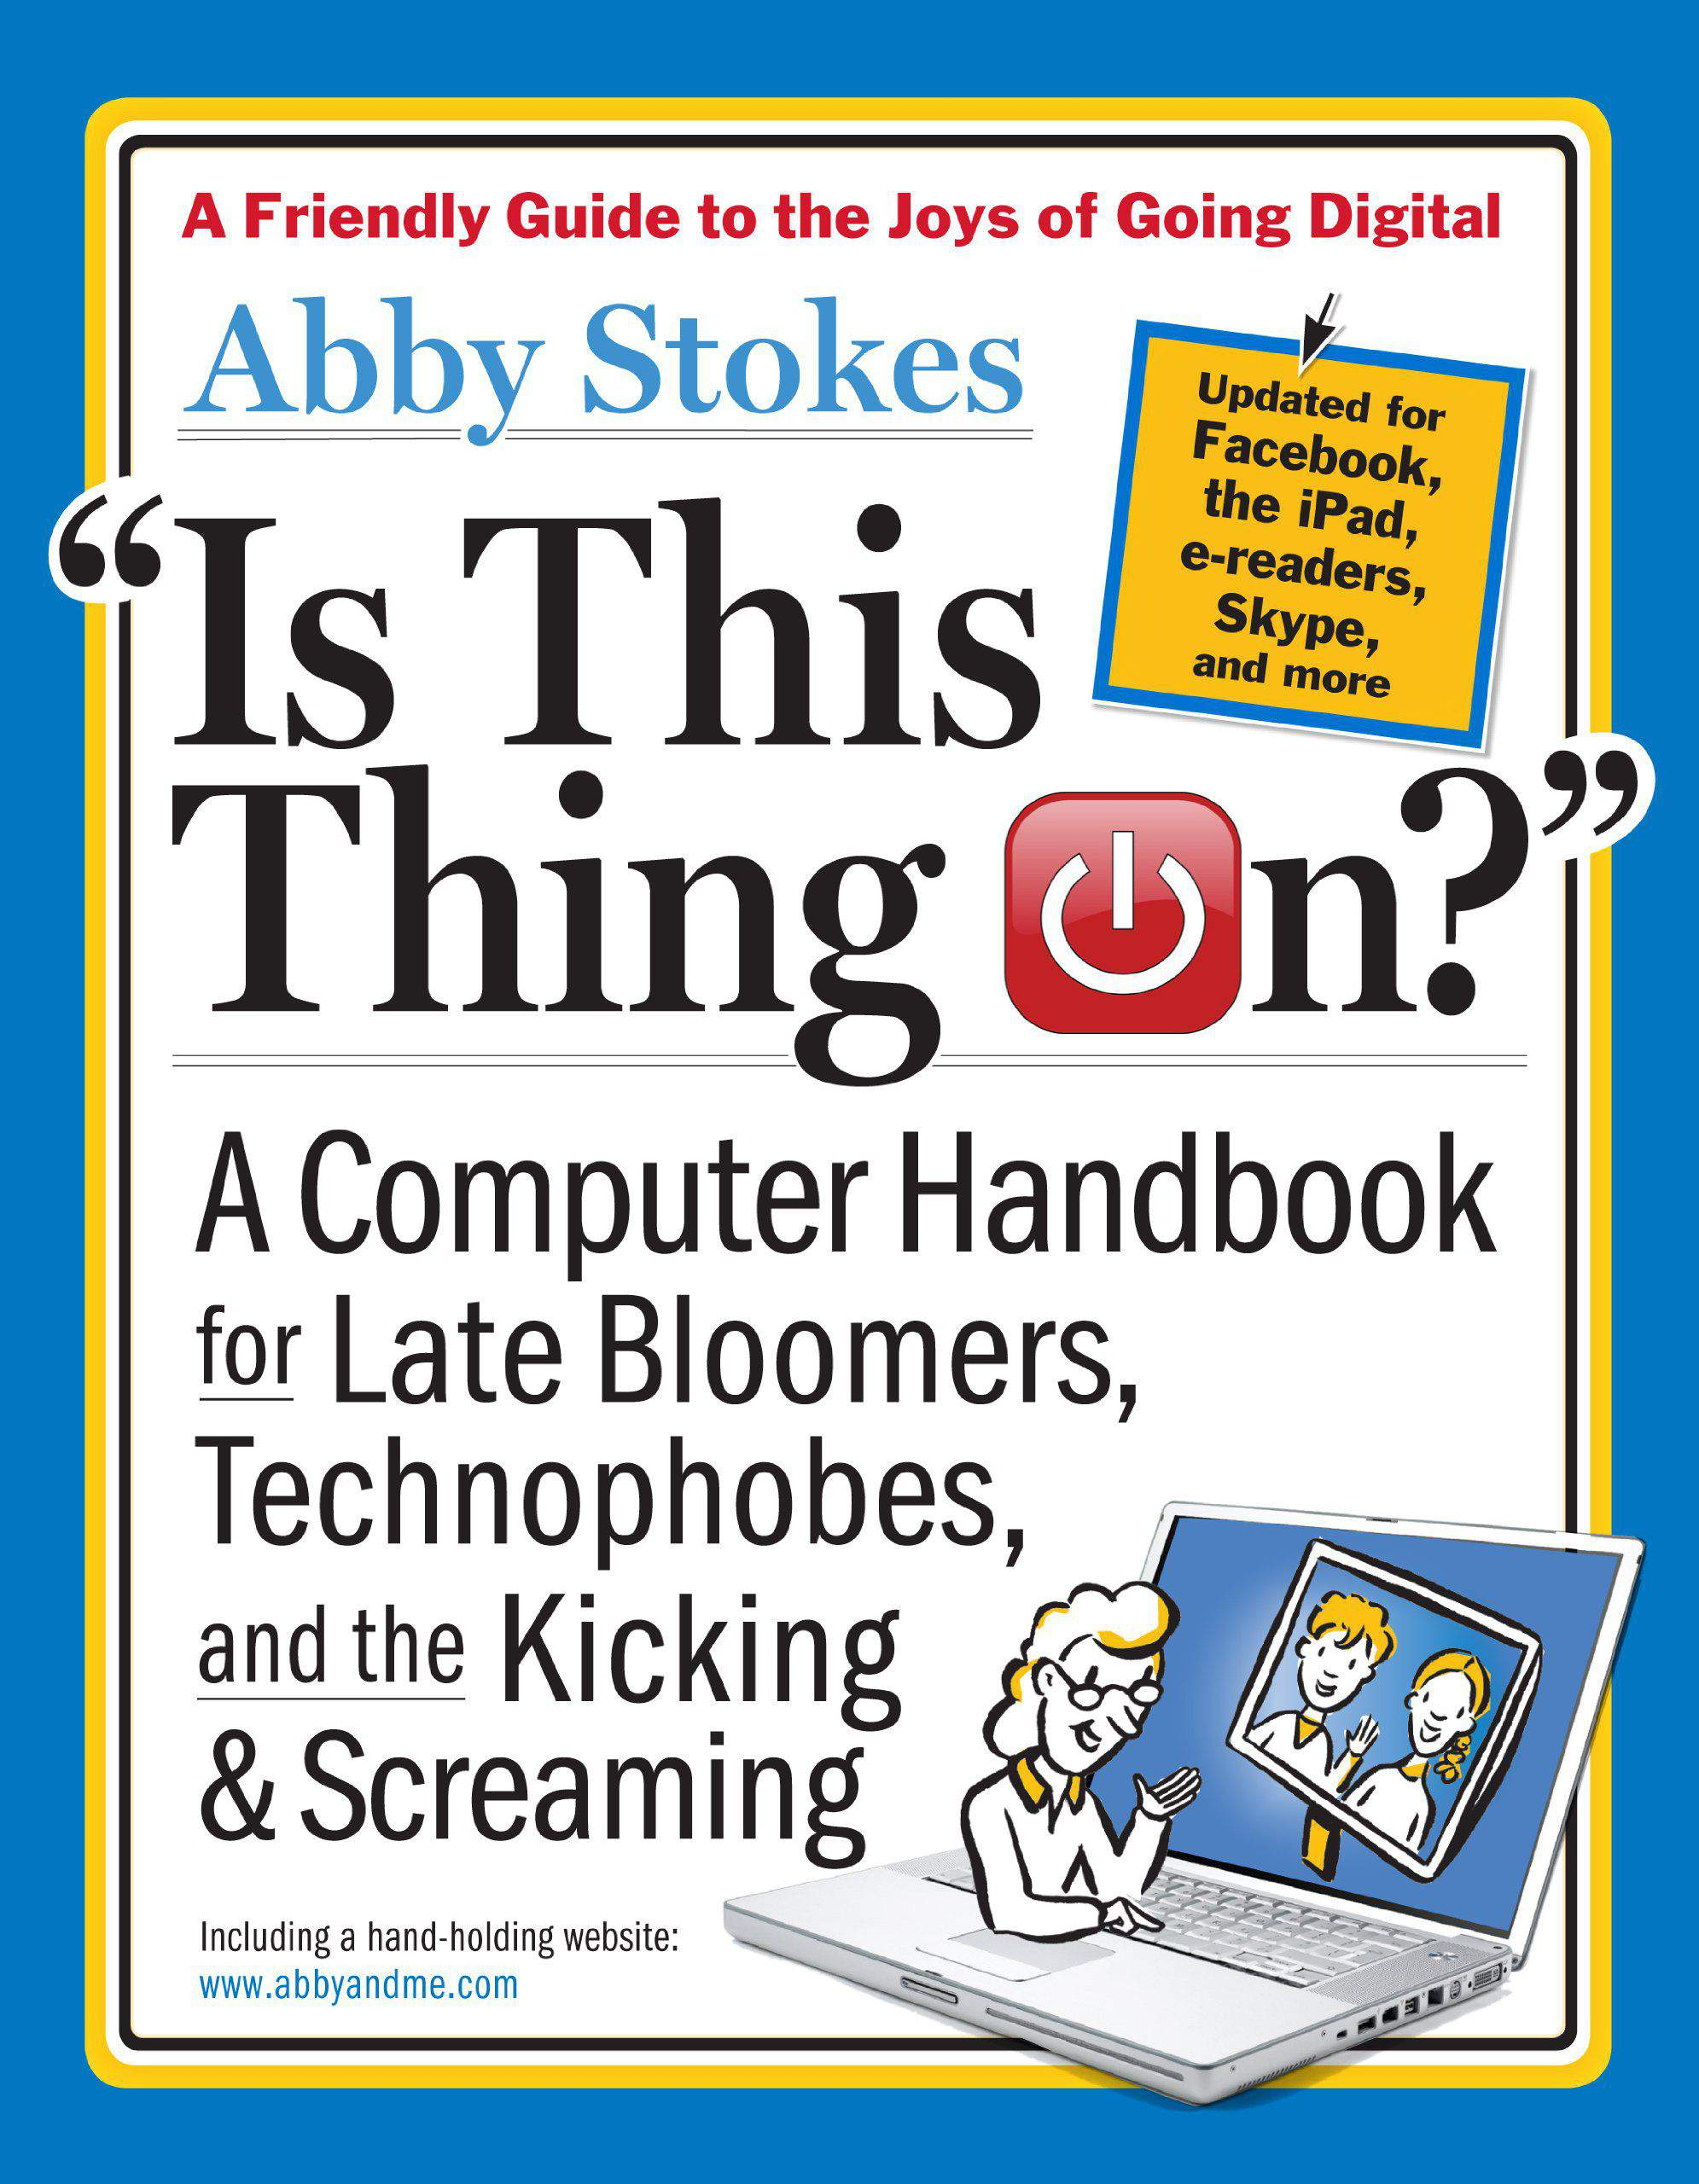 Is This Thing On? A Computer Handbook for Late Bloomers, Technophobes, and the Kicking and Screaming